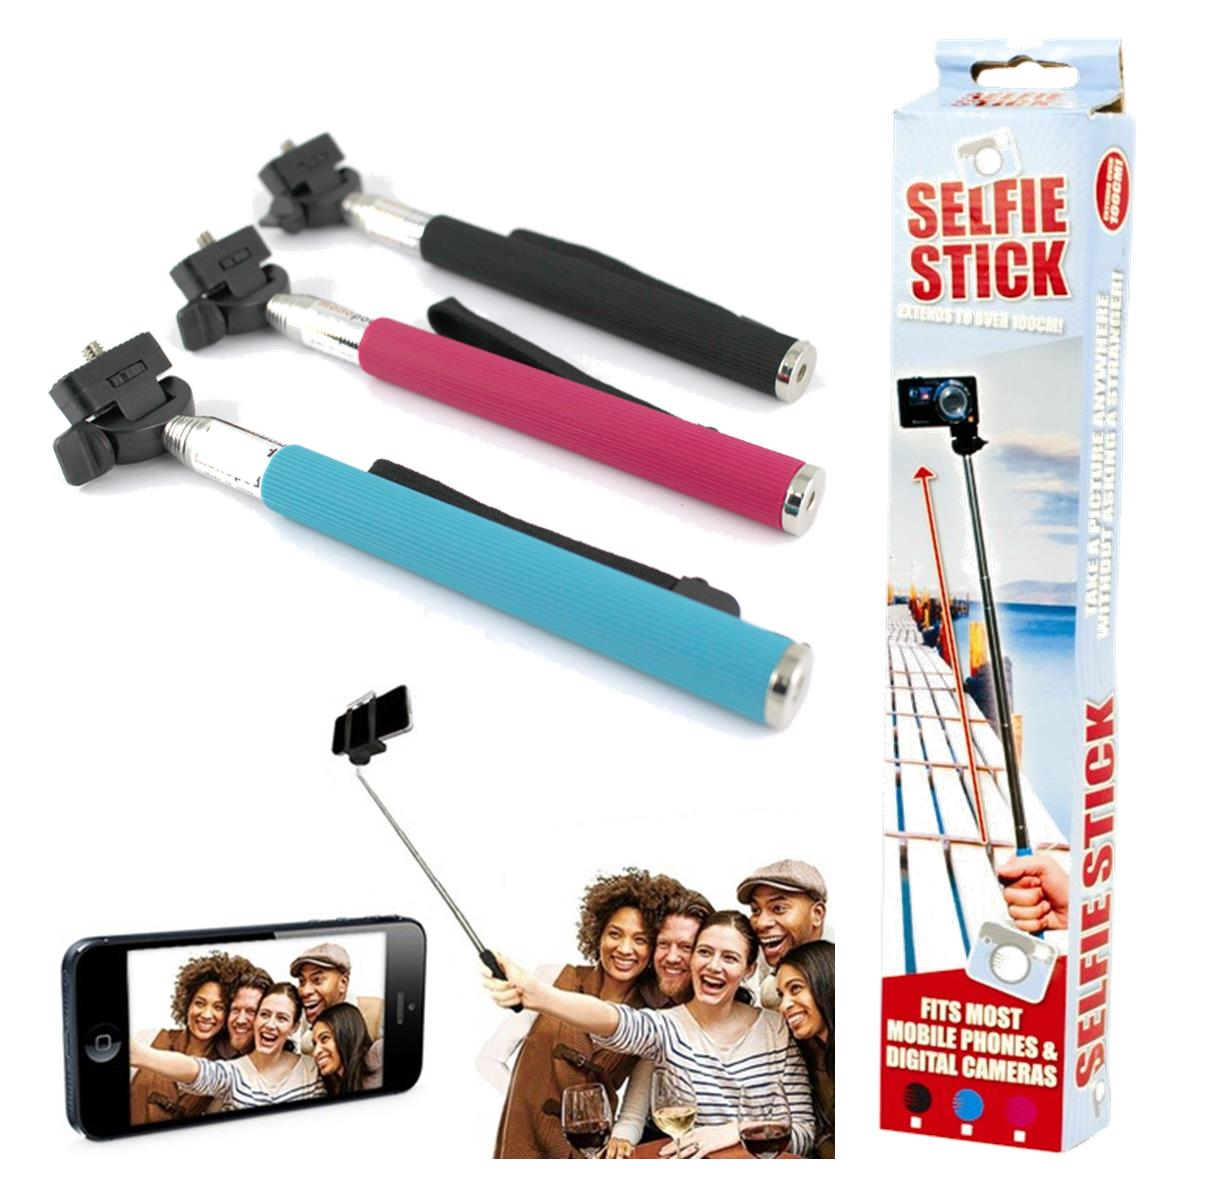 monopod selfie stick telescopic mobile phone iphone camera holder black ebay. Black Bedroom Furniture Sets. Home Design Ideas